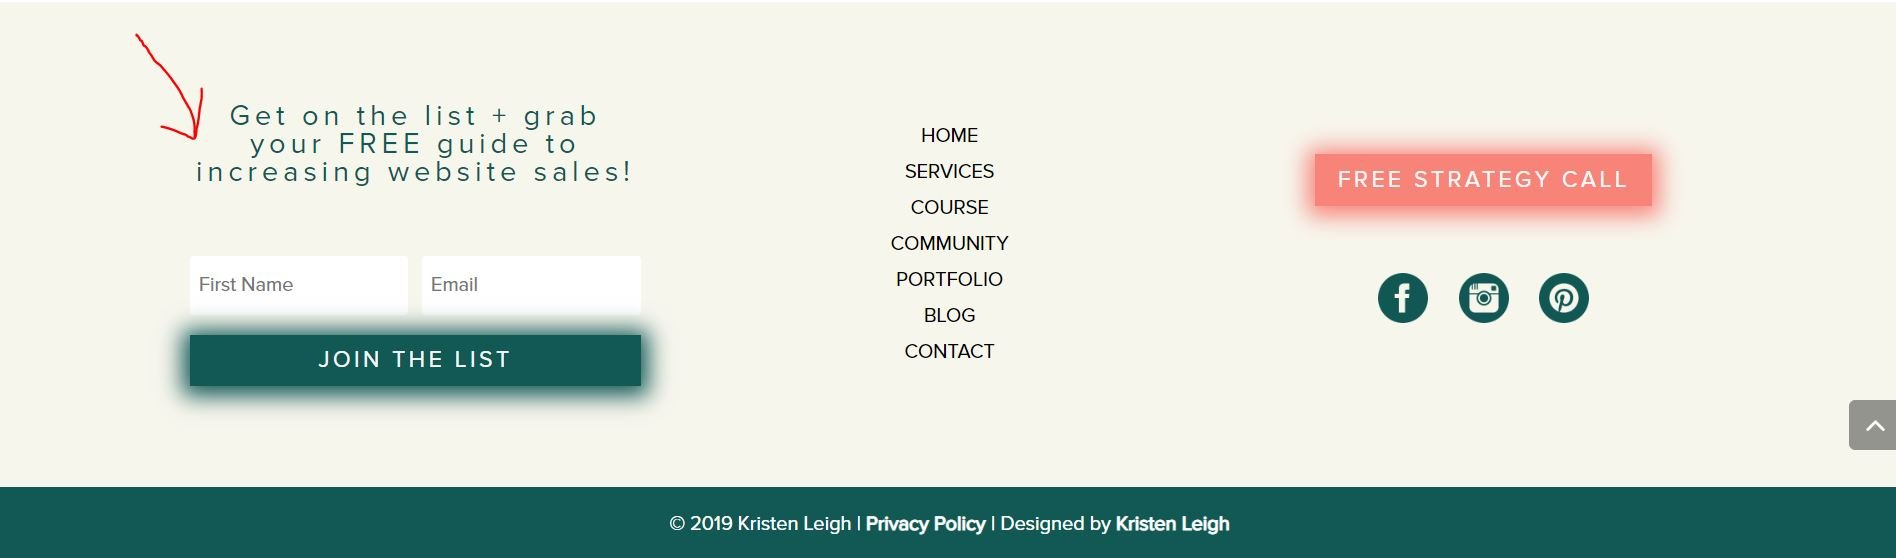 Kristen Leigh Designs | WordPress Web Design Studio | Best Places to Add Email Opt In Form on Your Website | Button in Footer Example